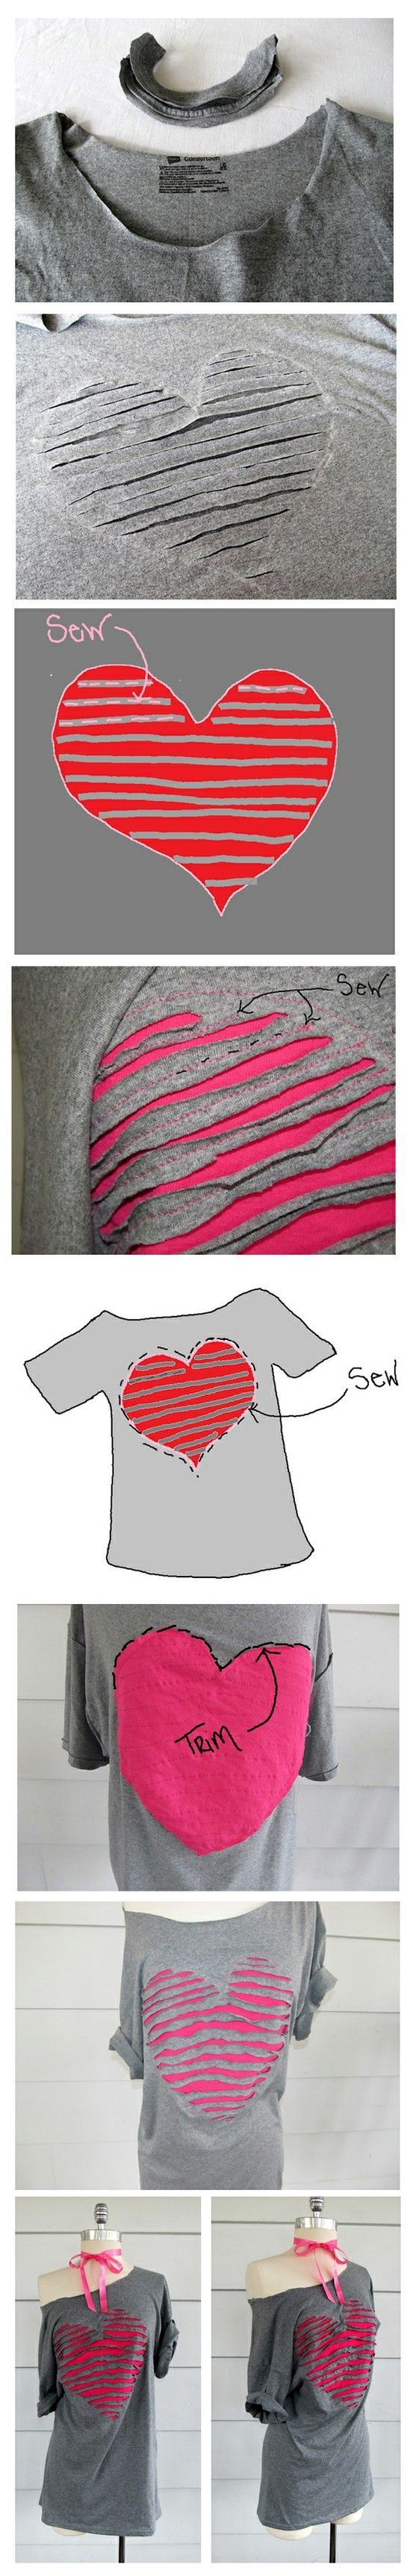 DIY heart shirtSewing, Ideas, Old Shirts, Diy Clothing, Heart Shirts, Tshirt, Cut Out, Diy Shirts, Crafts